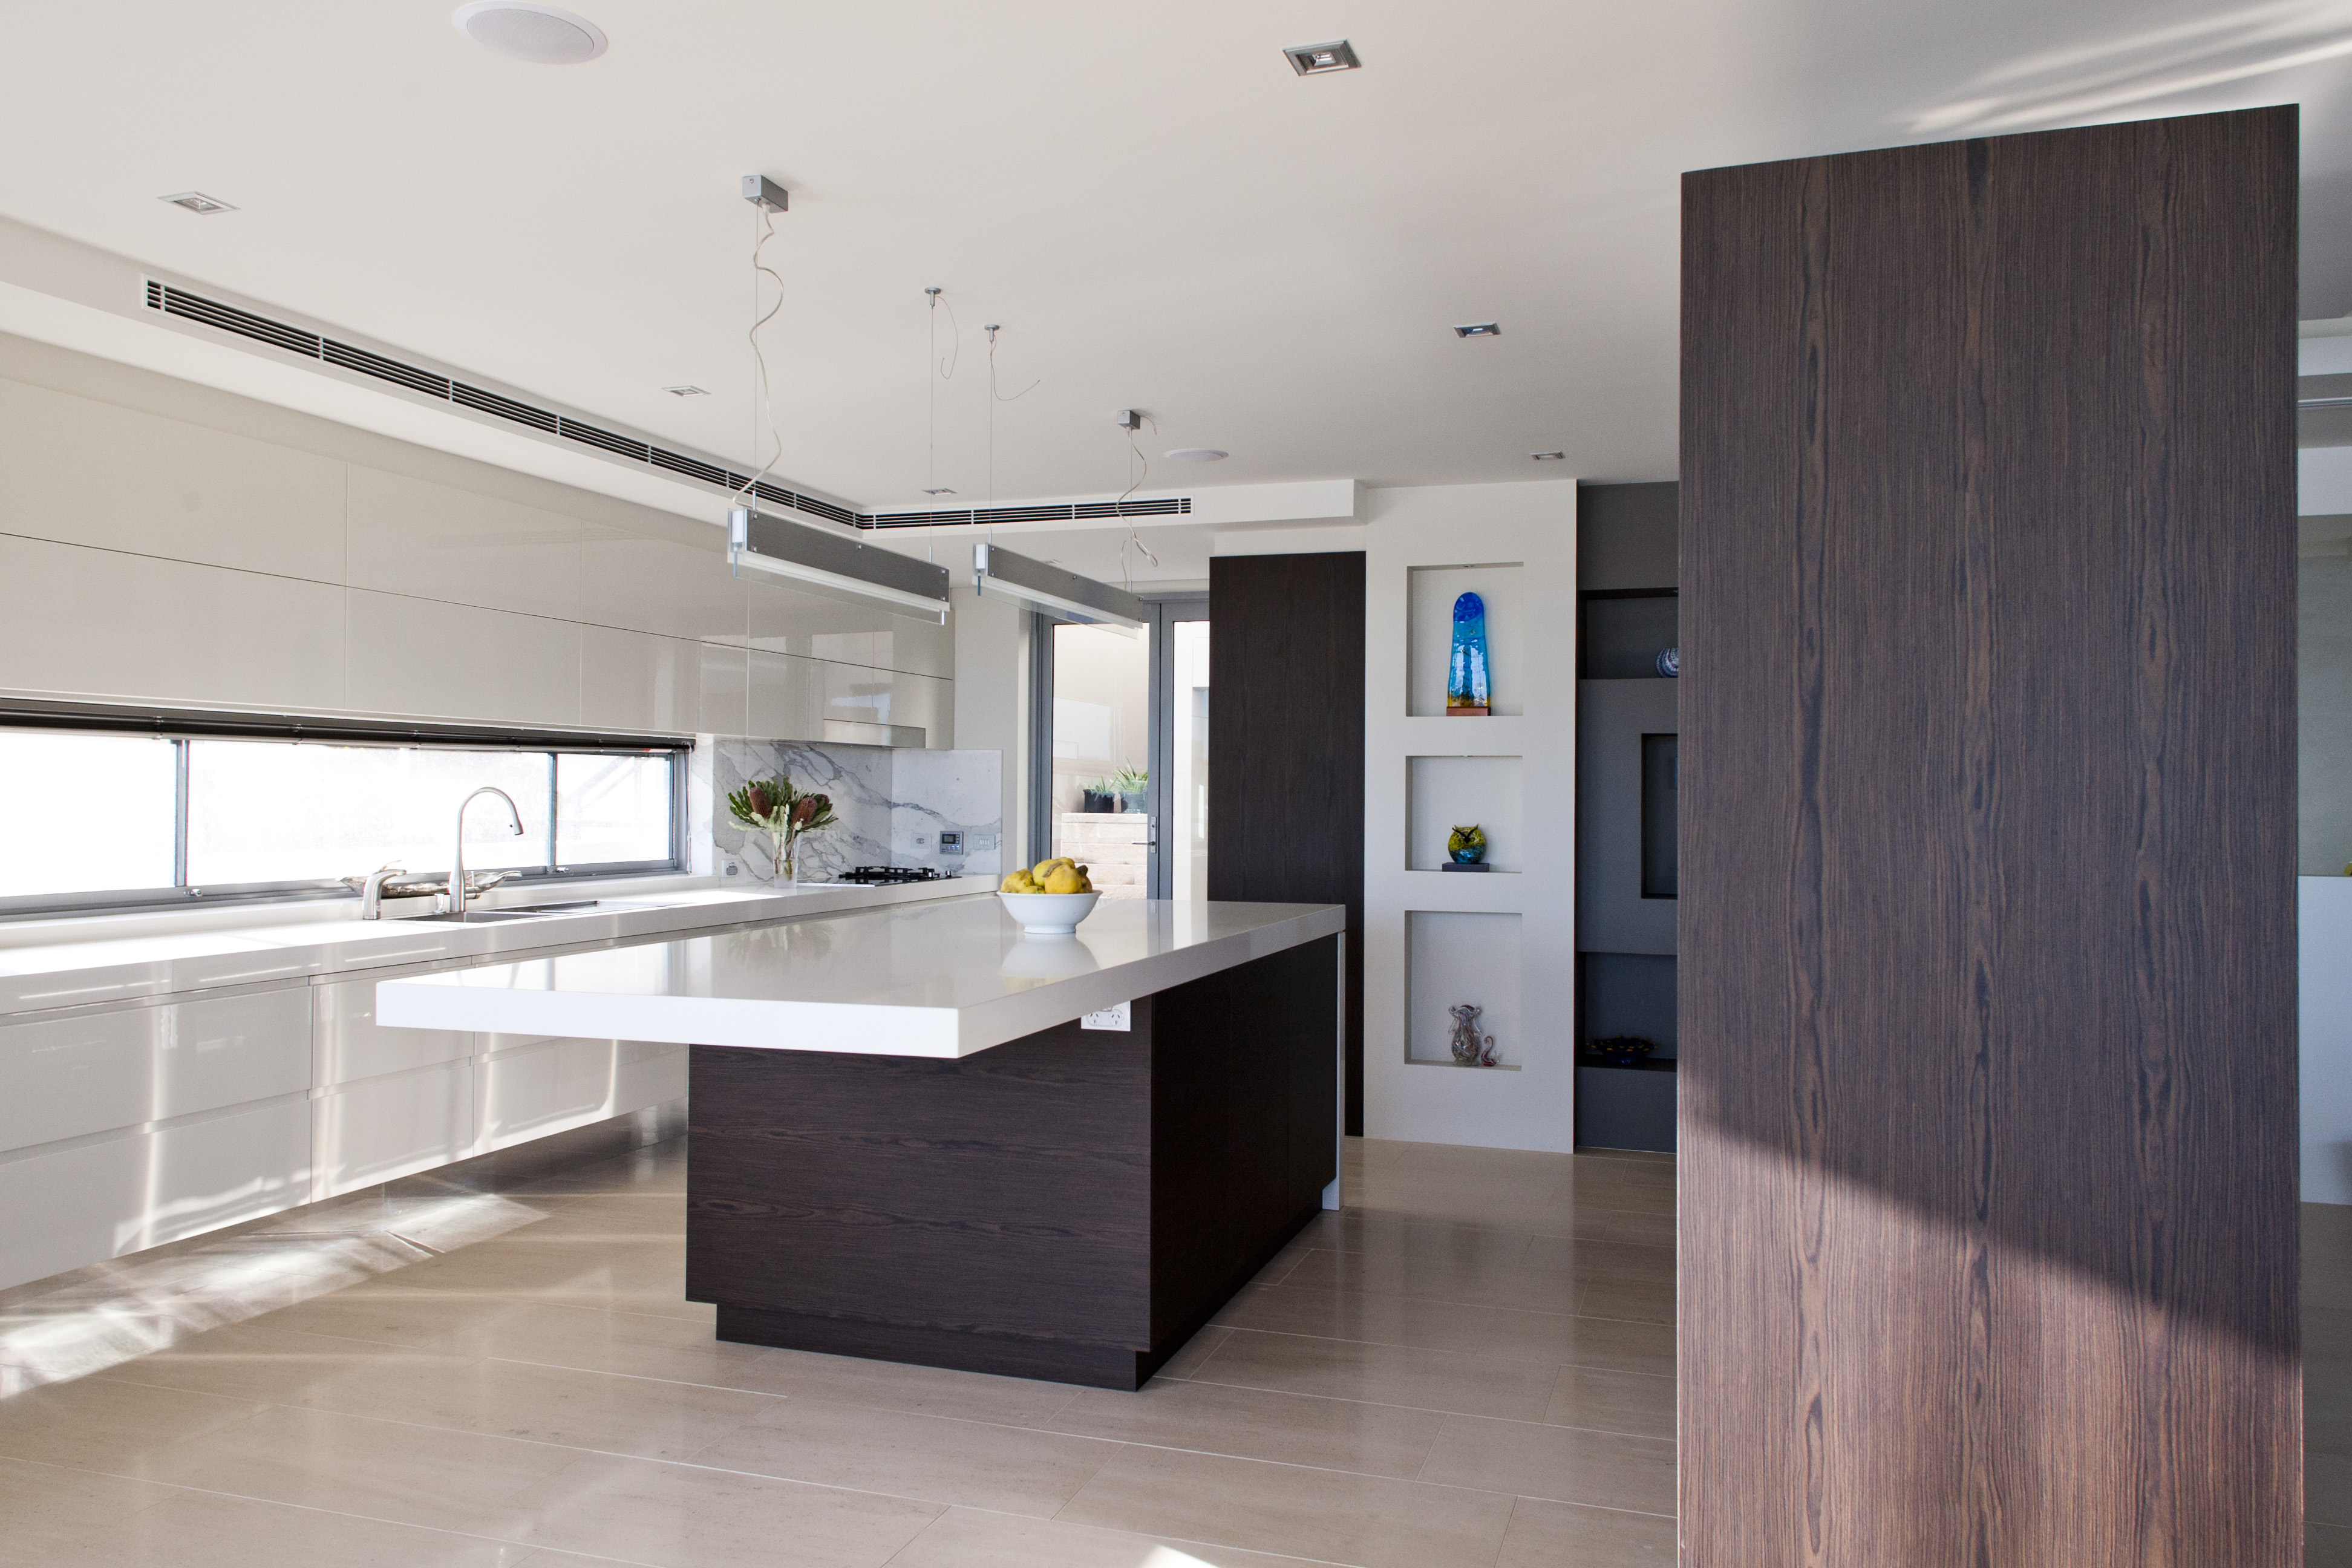 Kitchens sydney bathroom kitchen renovations sydney impala - Eco Opulance